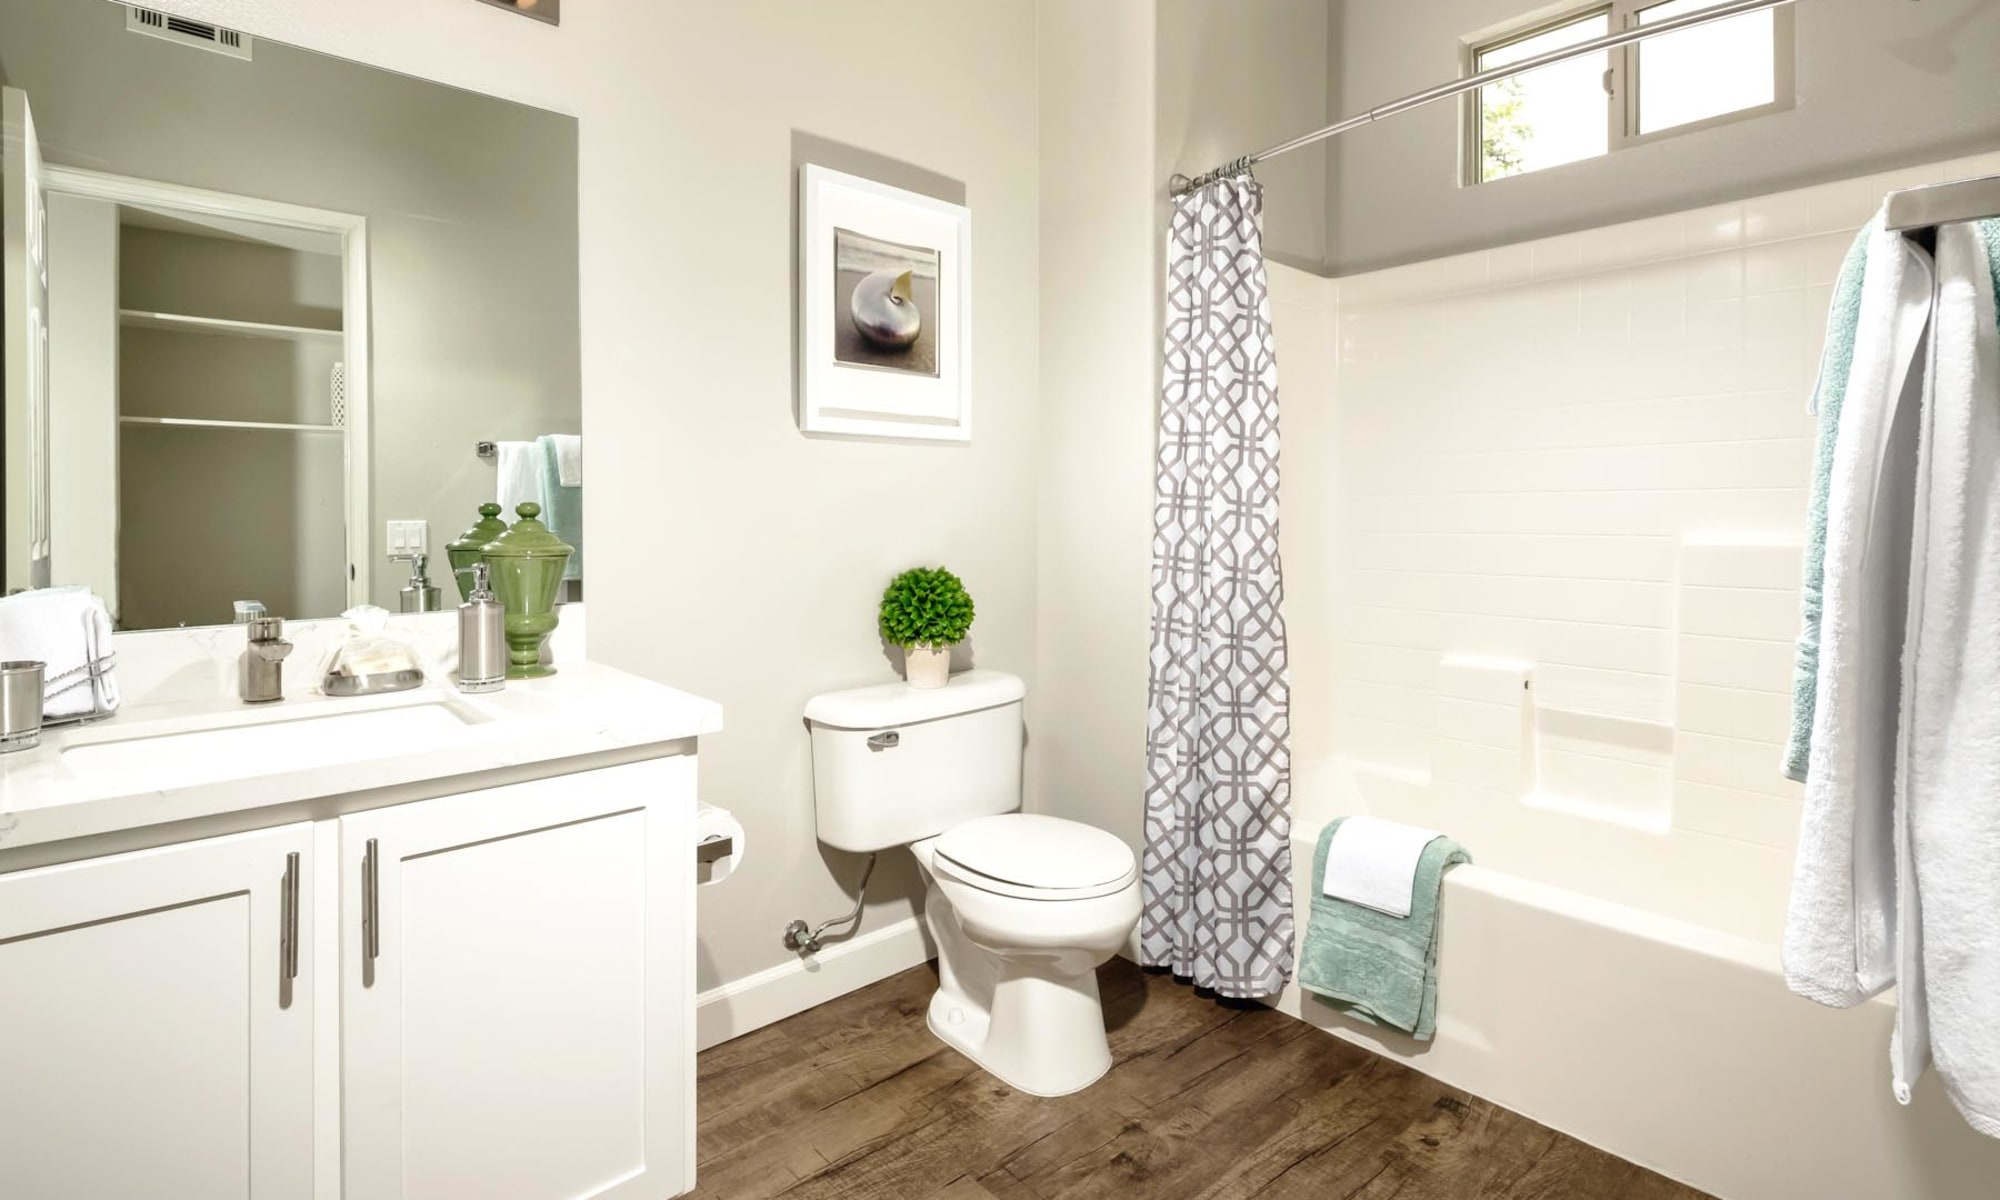 Bathroom with hardwood flooring and a tiled shower in a model home at Mission Hills in Camarillo, California